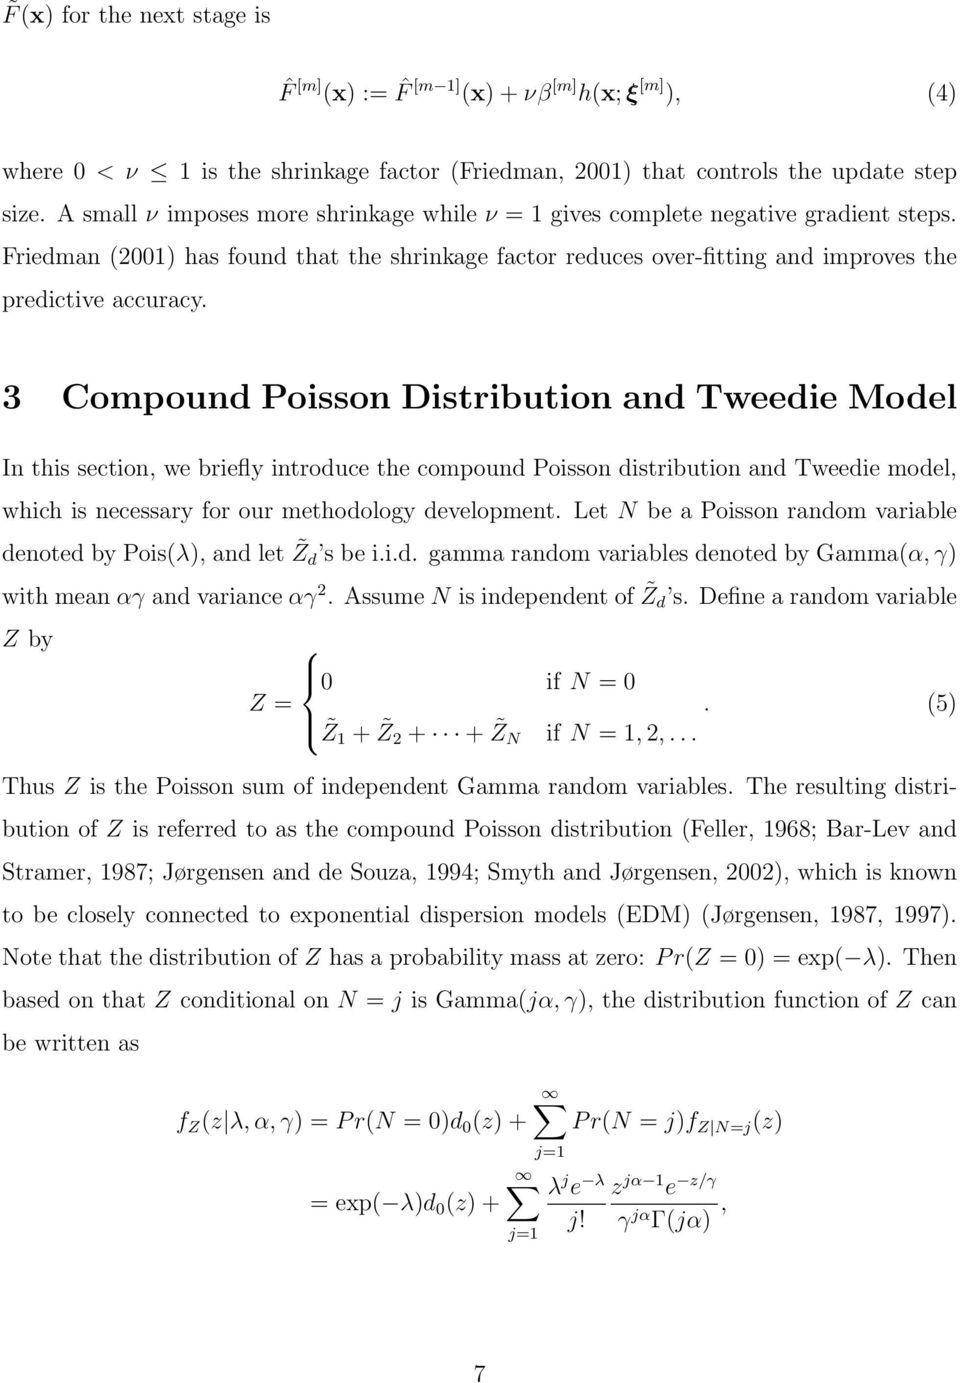 3 Compound Poisson Distribution and Tweedie Mode In this section, we briefy introduce the compound Poisson distribution and Tweedie mode, which is necessary for our methodoogy deveopment.